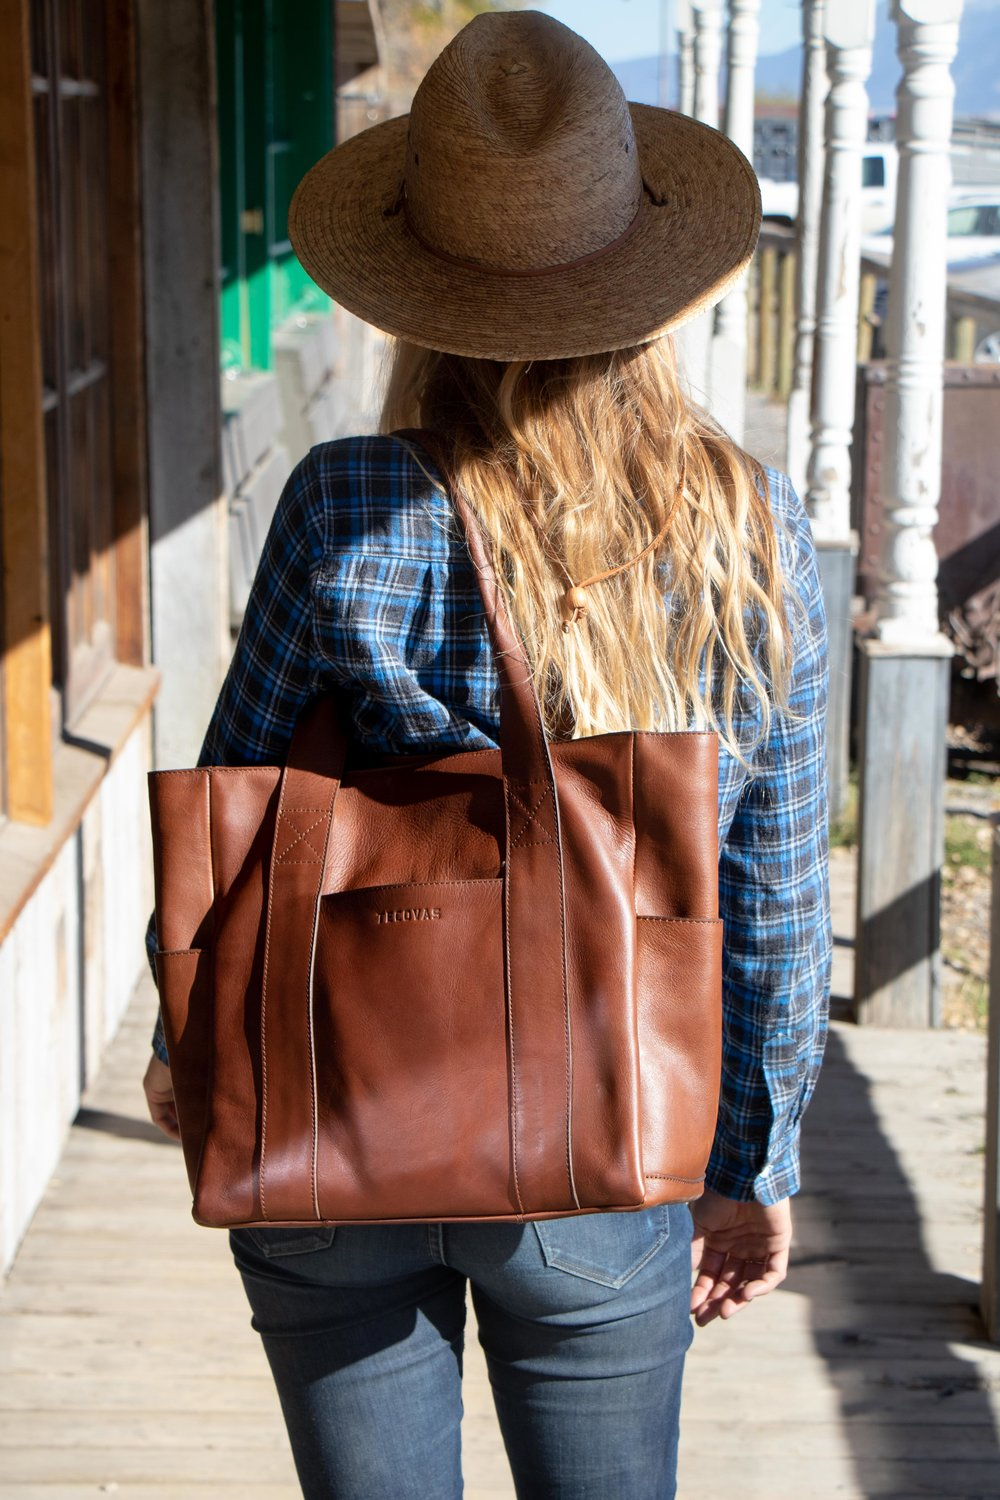 Katie | stetson hats | the old saloon | cowgirl | emigrant, motana